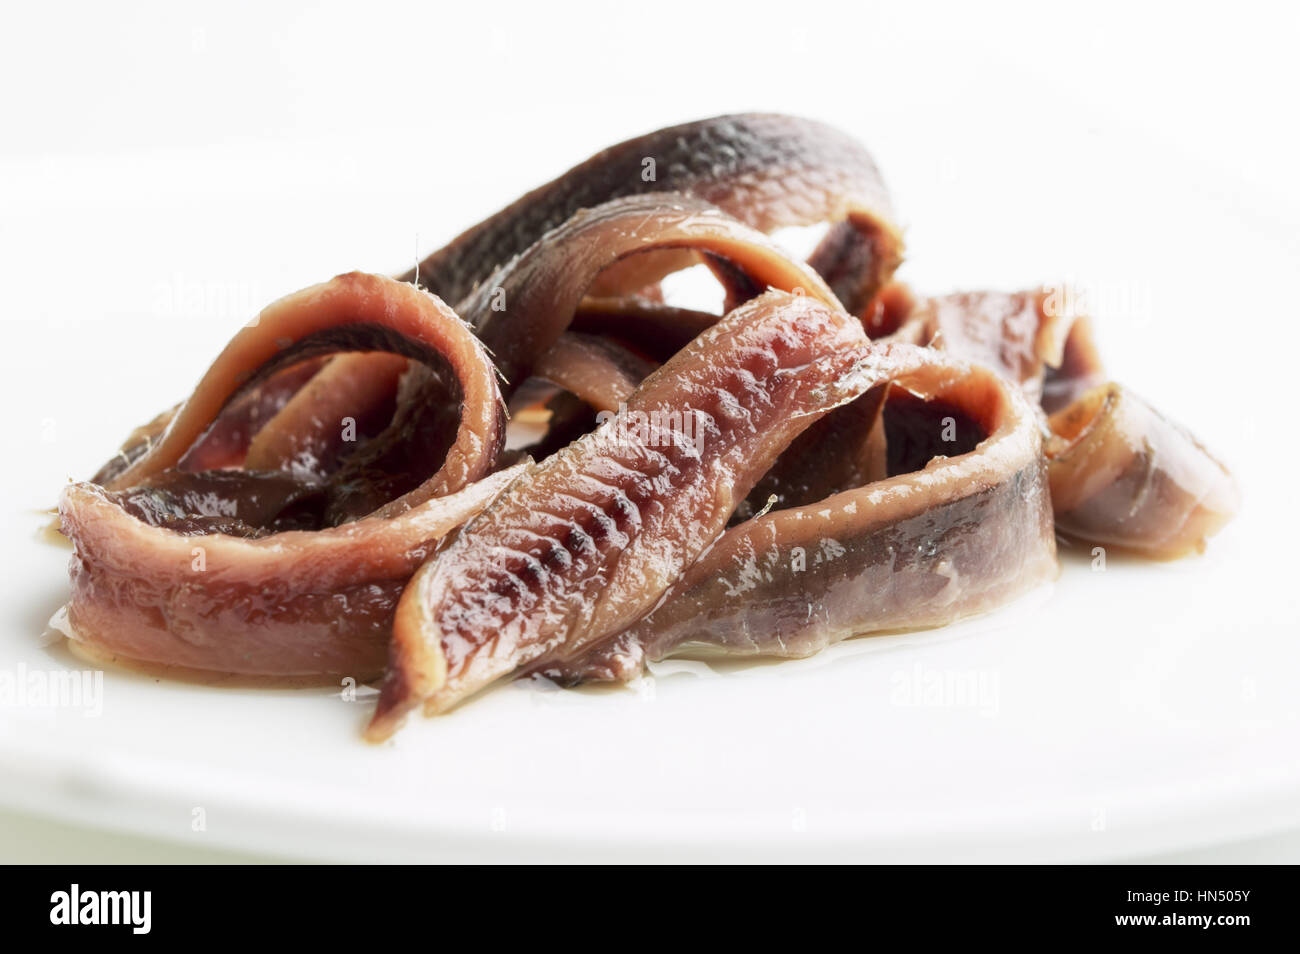 anchovies in oil on a white surface - Stock Image